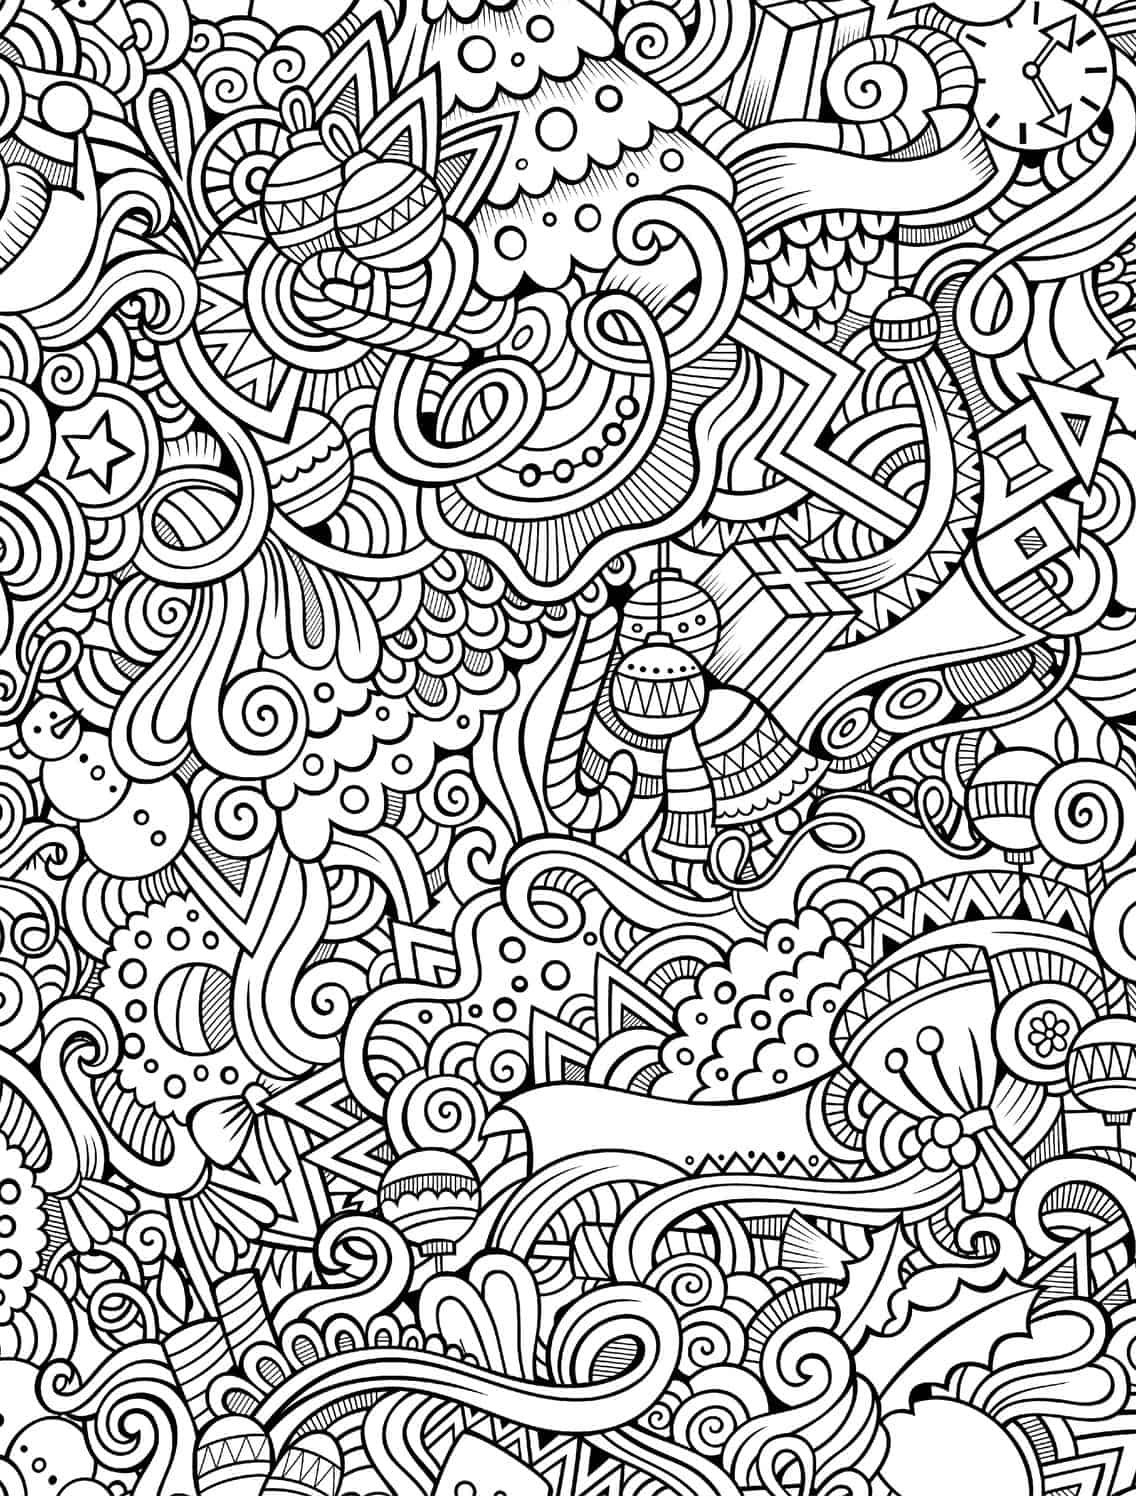 Coloring Pages For Adults Free Pdf